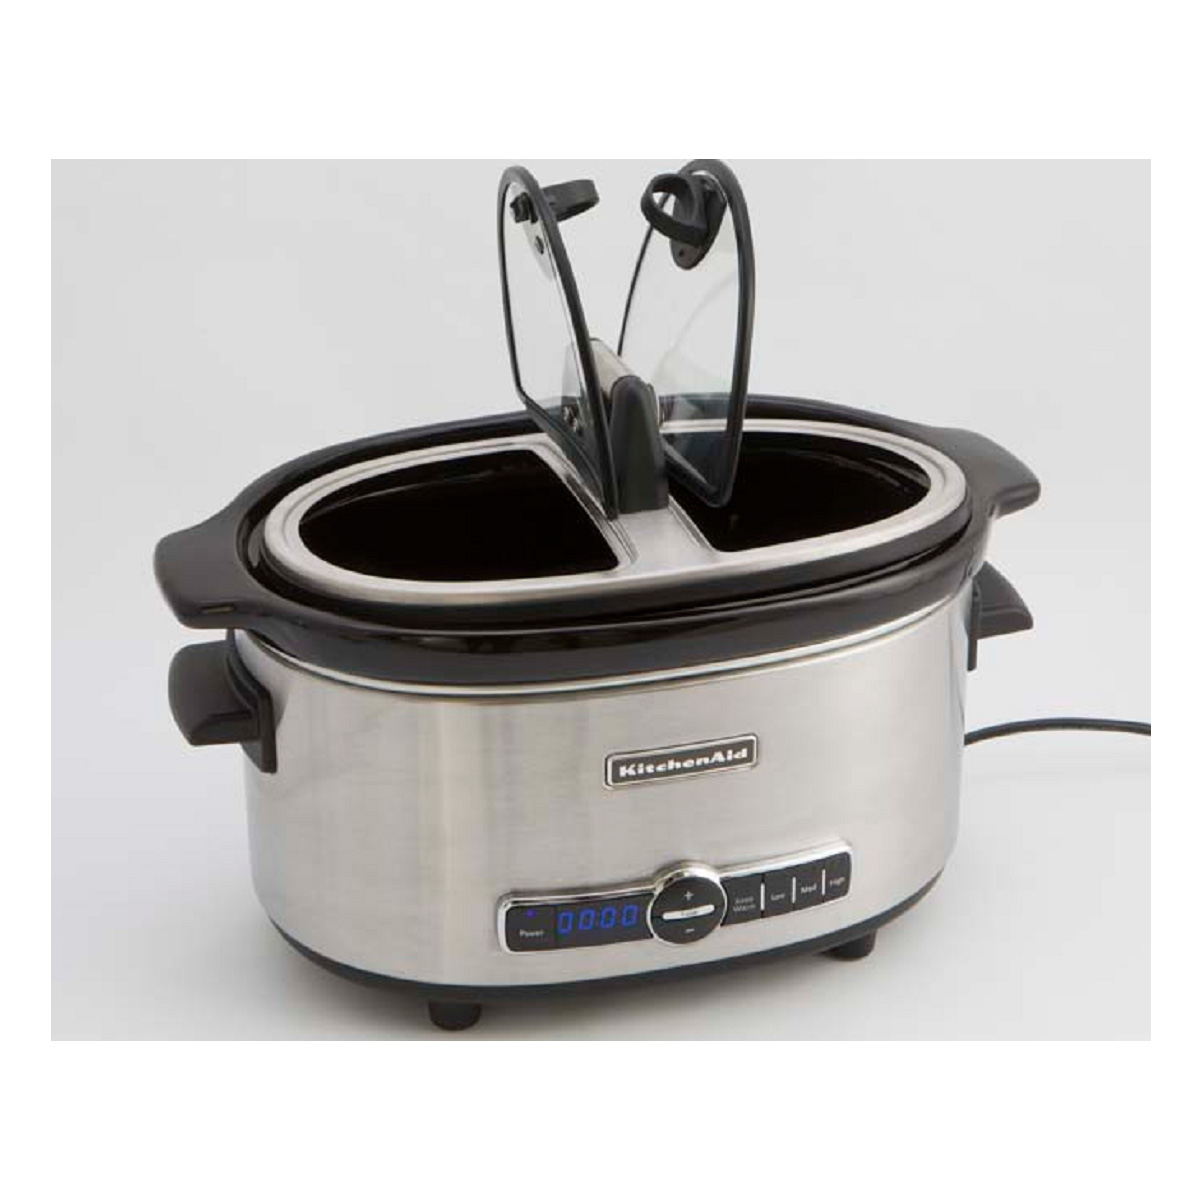 Kitchenaid 92395 Artisan Slow Cooker Home Clearance